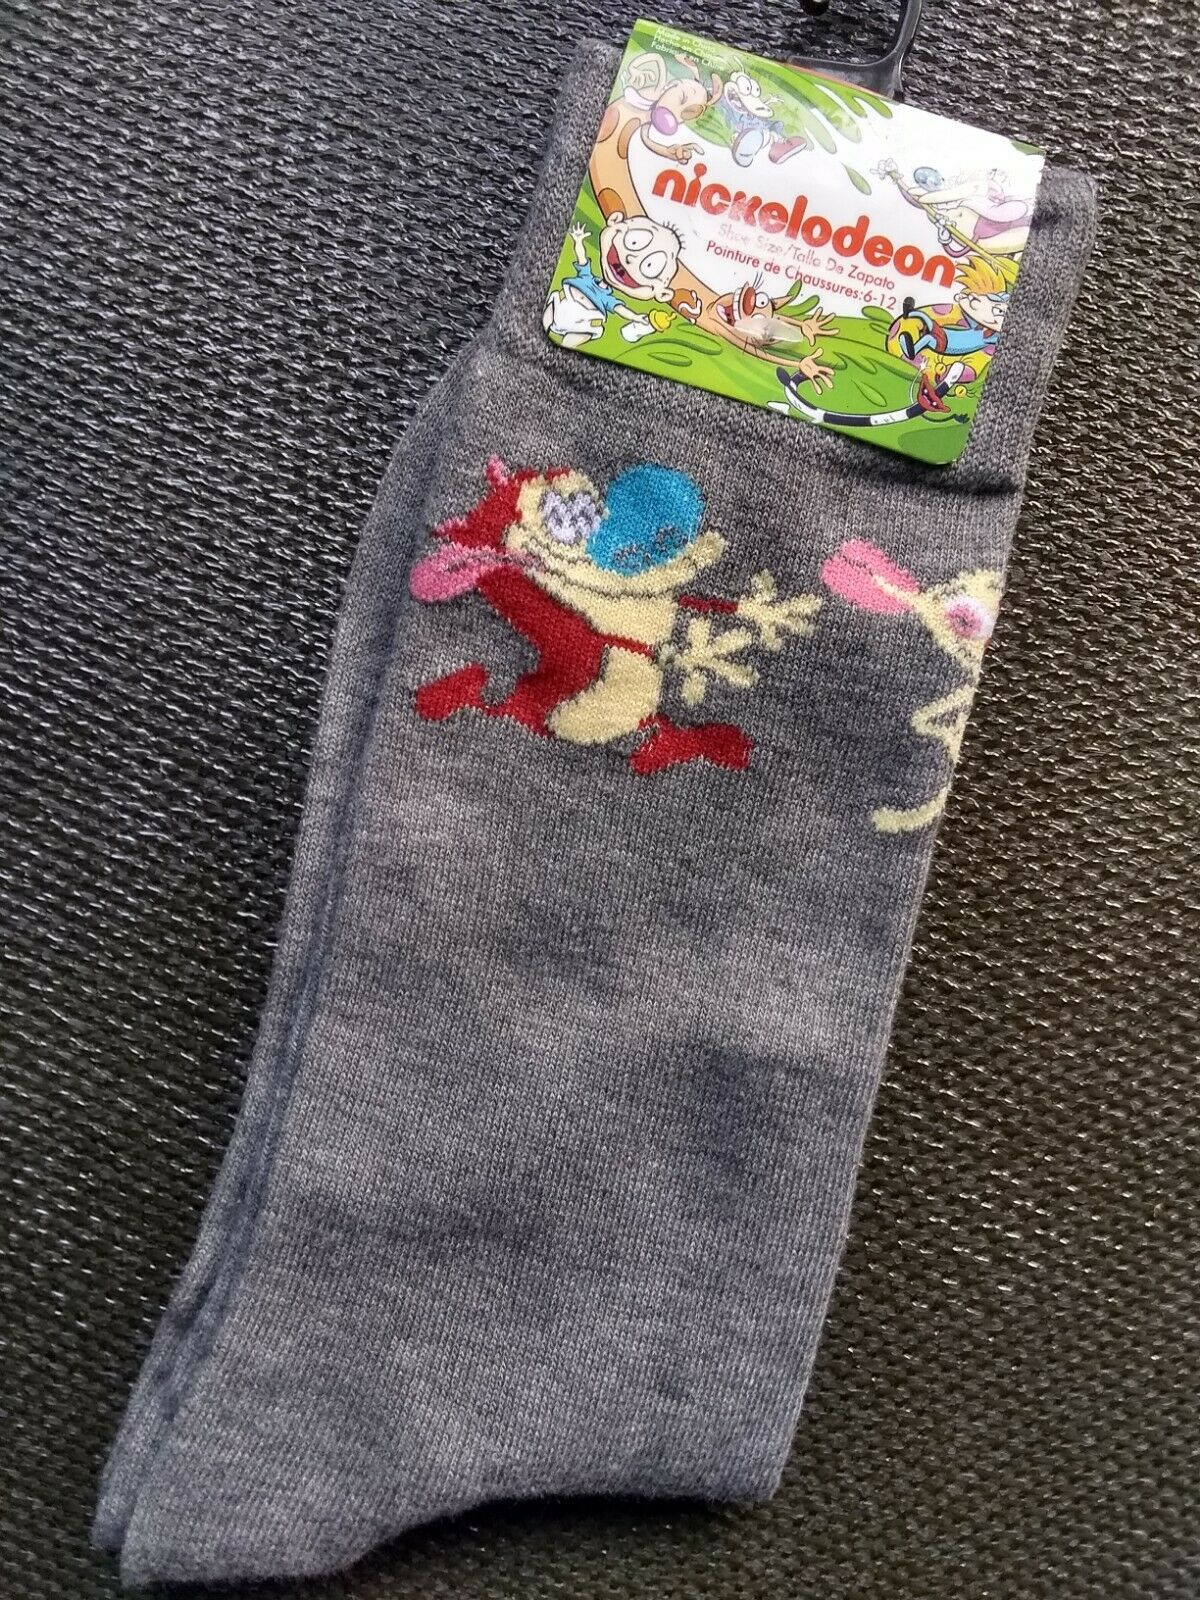 REN & STIMPY Mens 1 Pair Of Novelty Crew Dress Socks Size 6-12 Nickelodeon NEW